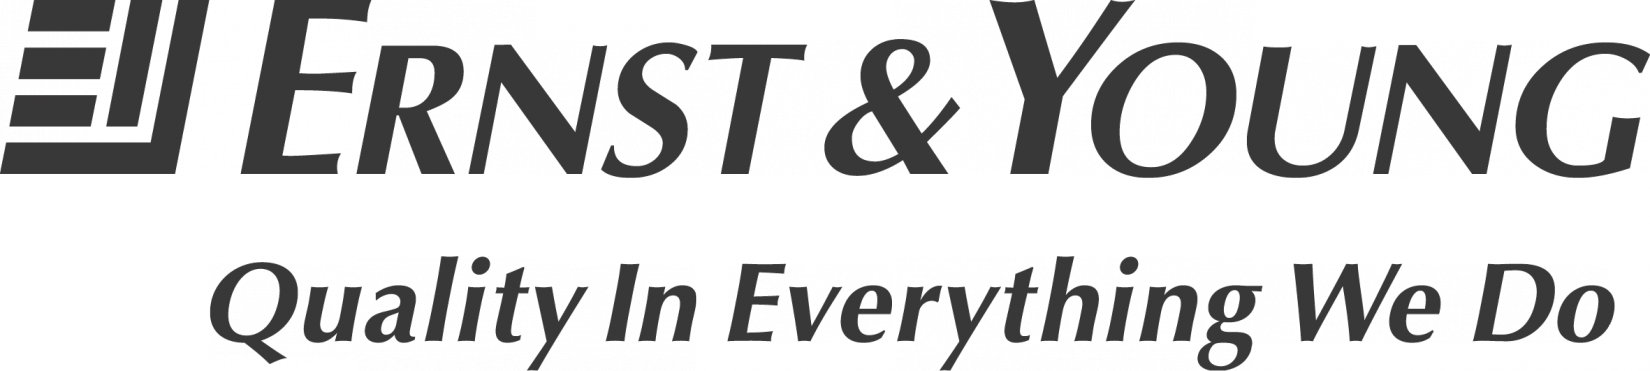 Want to know Ernst & young font ? - forum | dafont.com